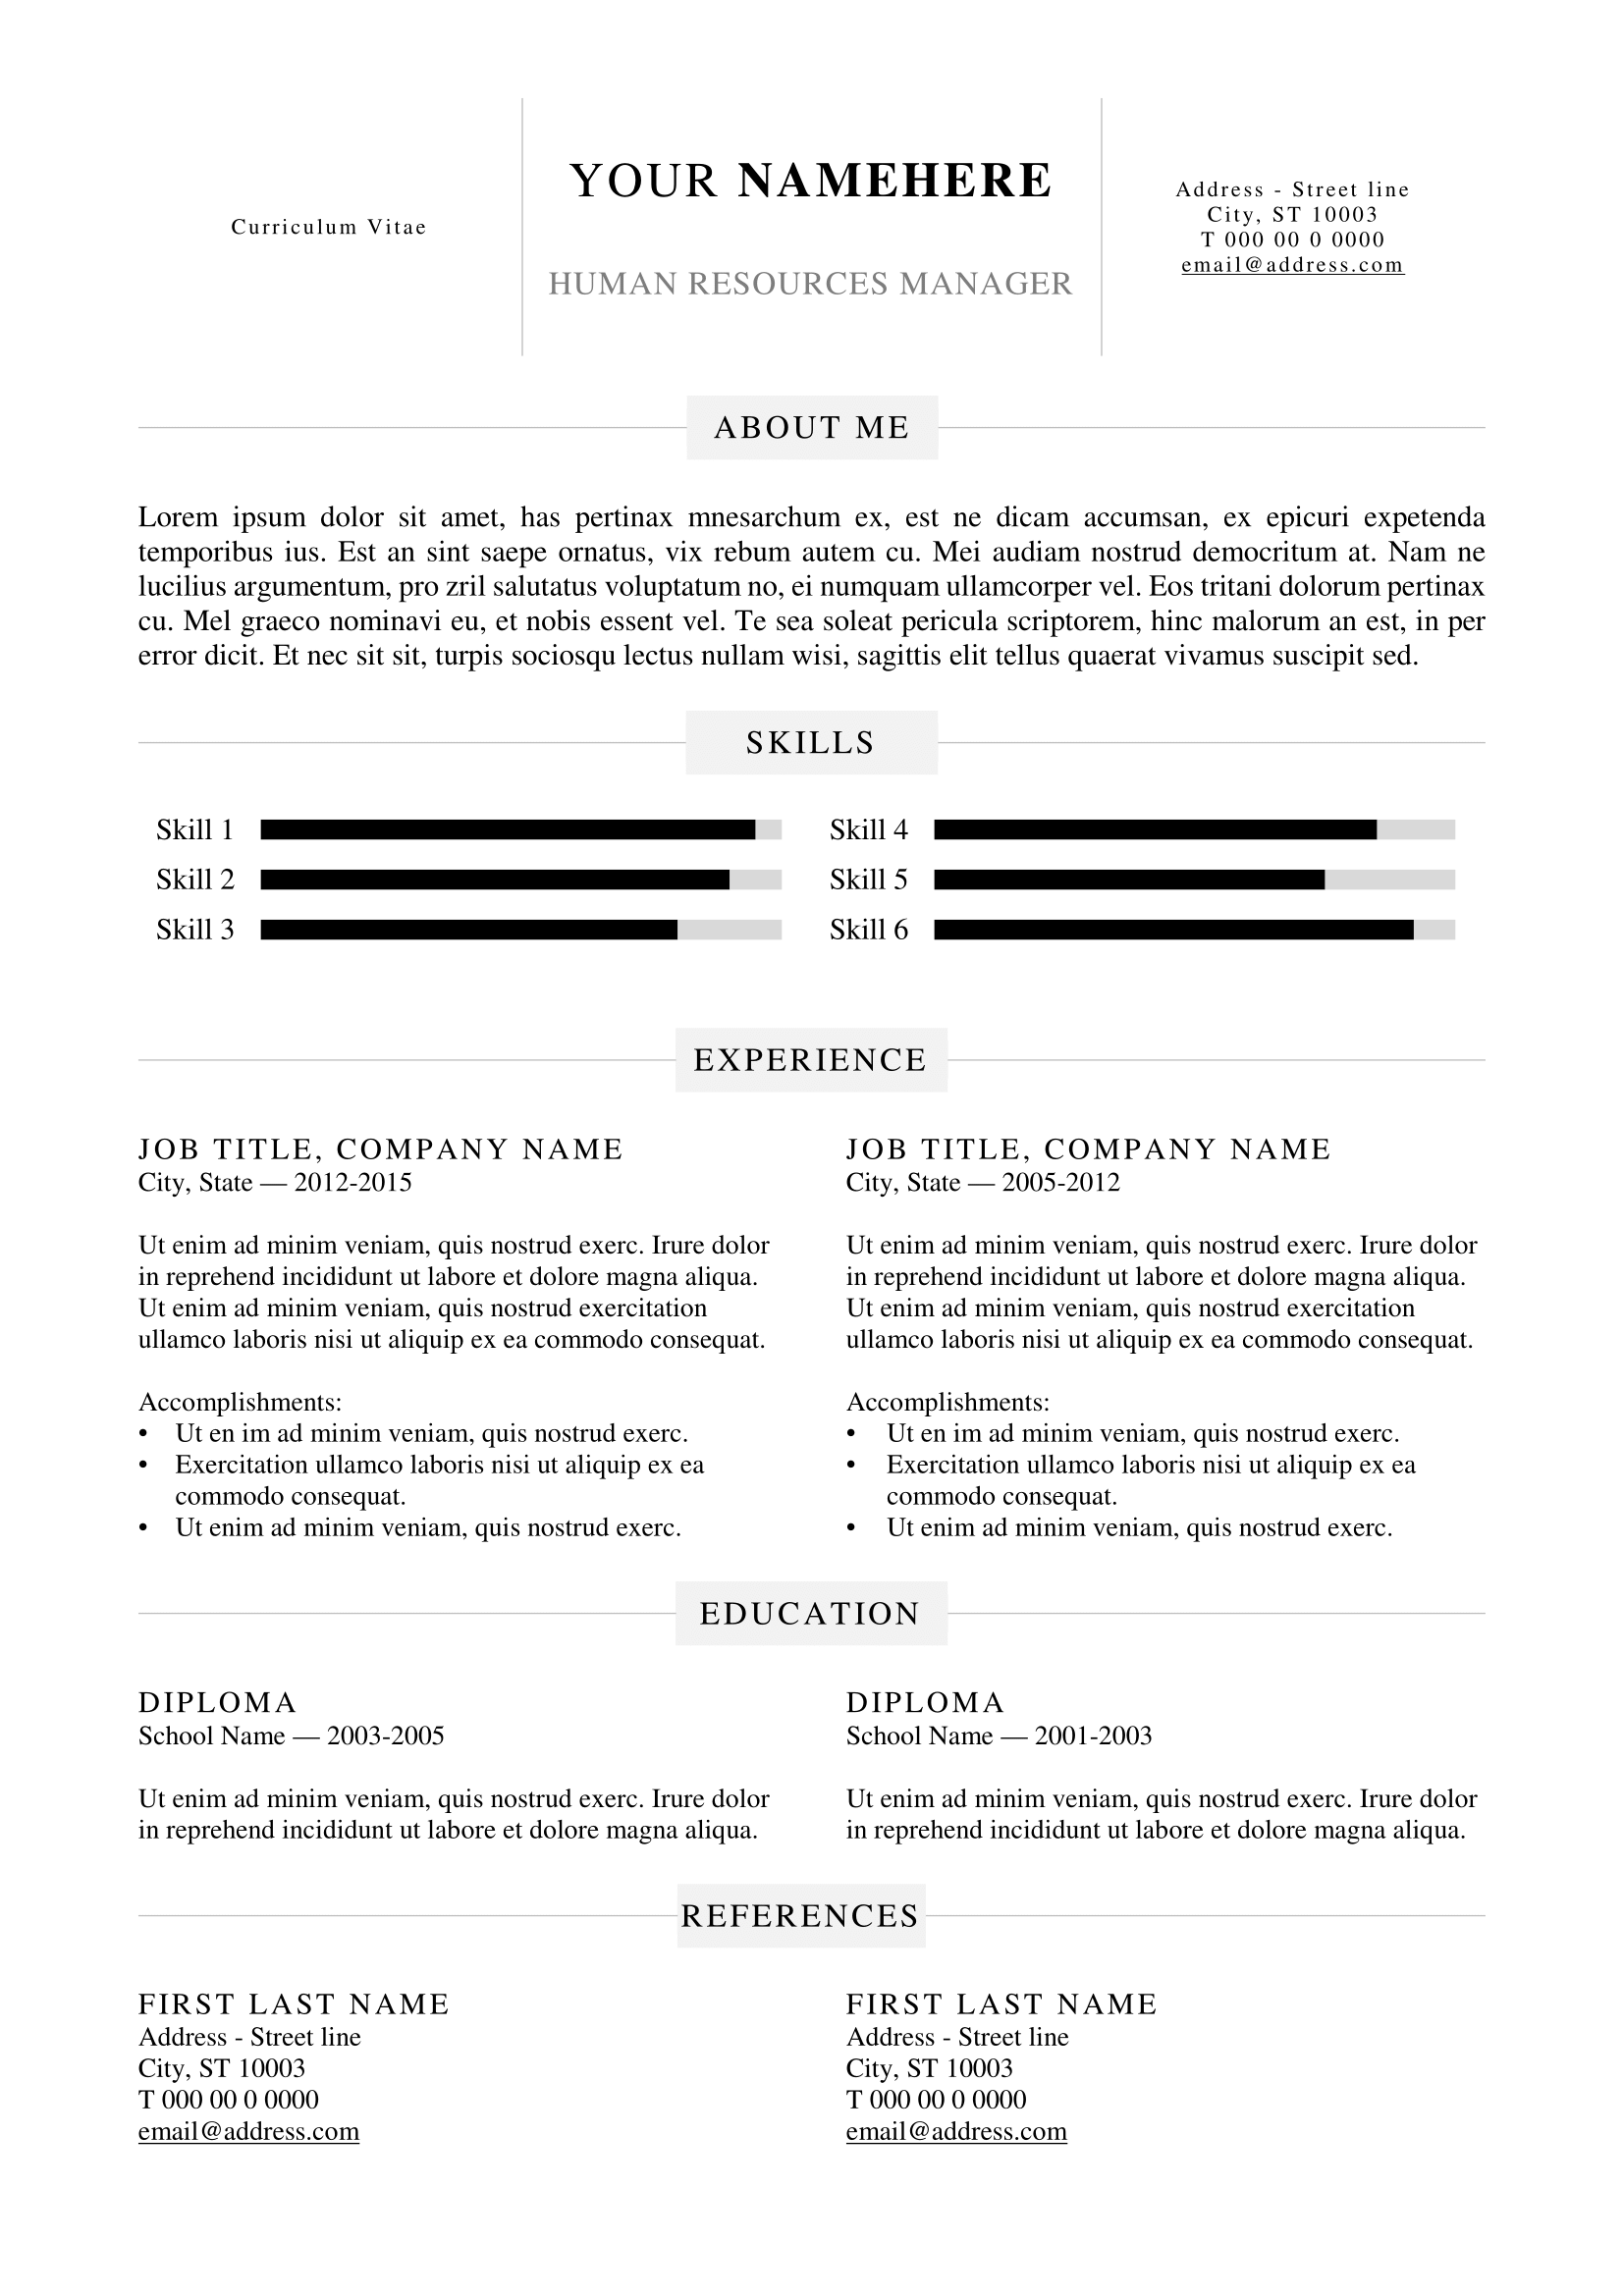 simple resume docx download